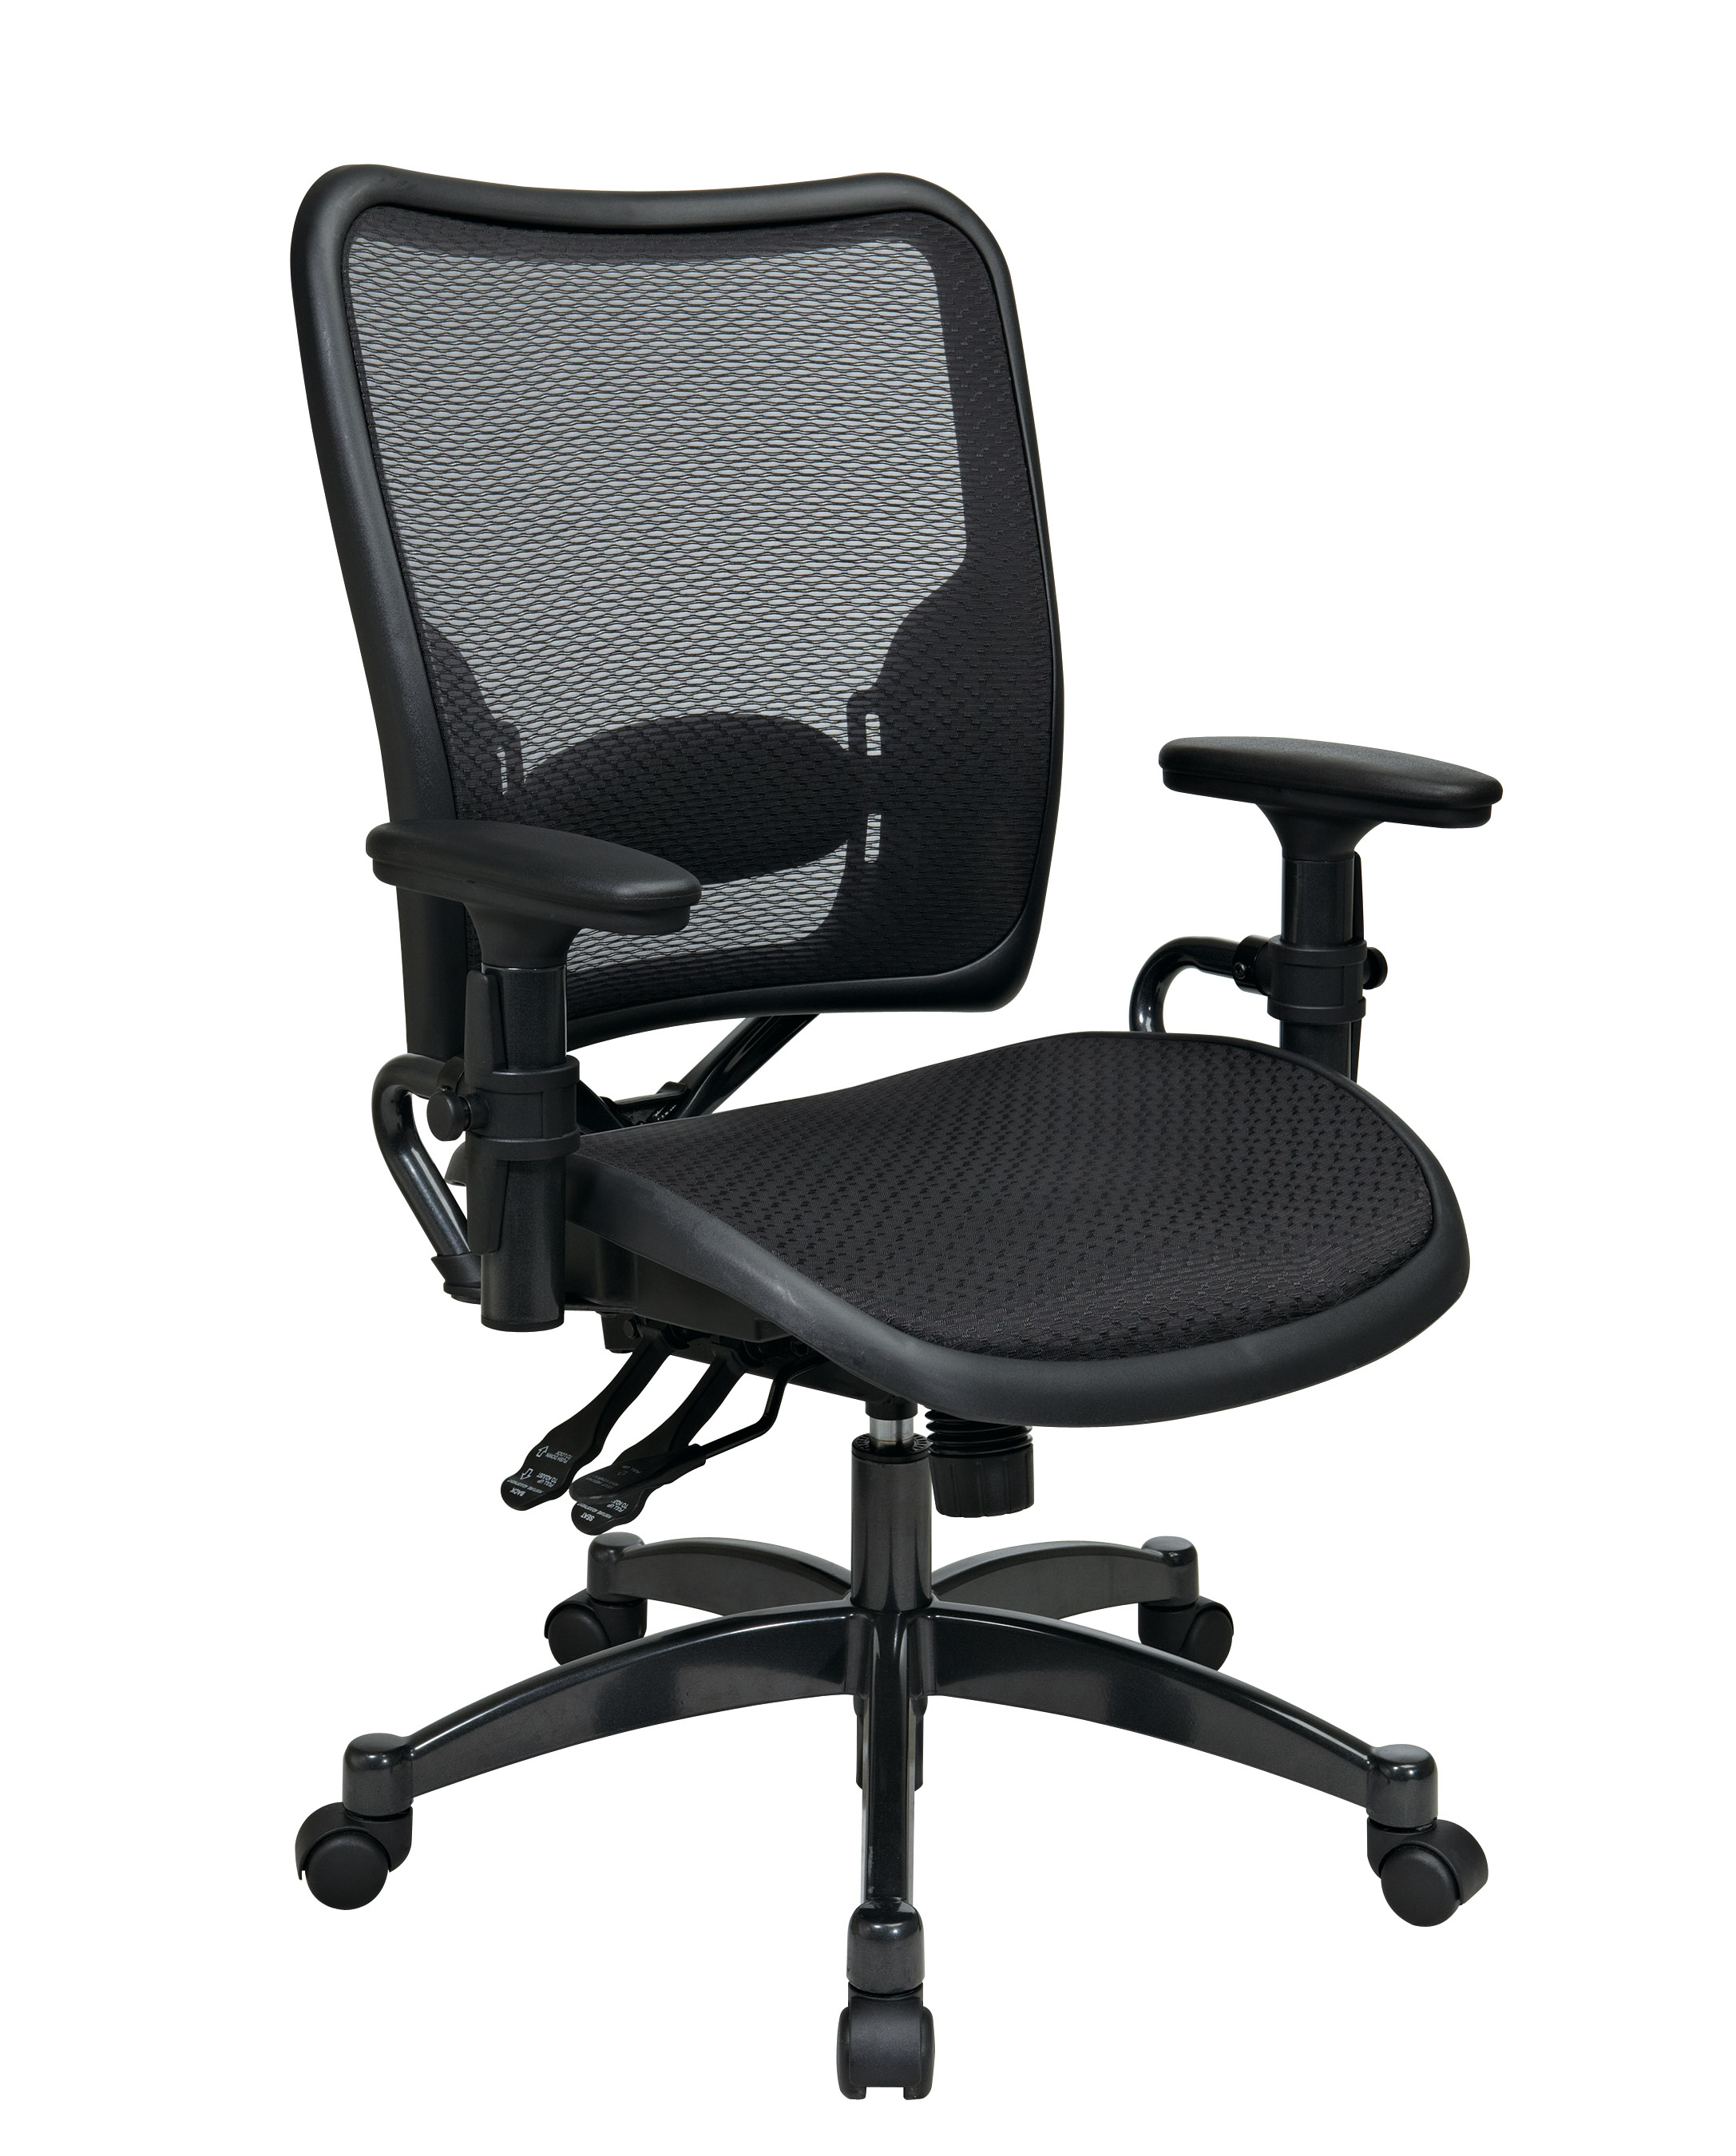 Dual Function Ergonmic Airgrid Chair Front - Professional Dual Function Ergonomics AirGrid Chair